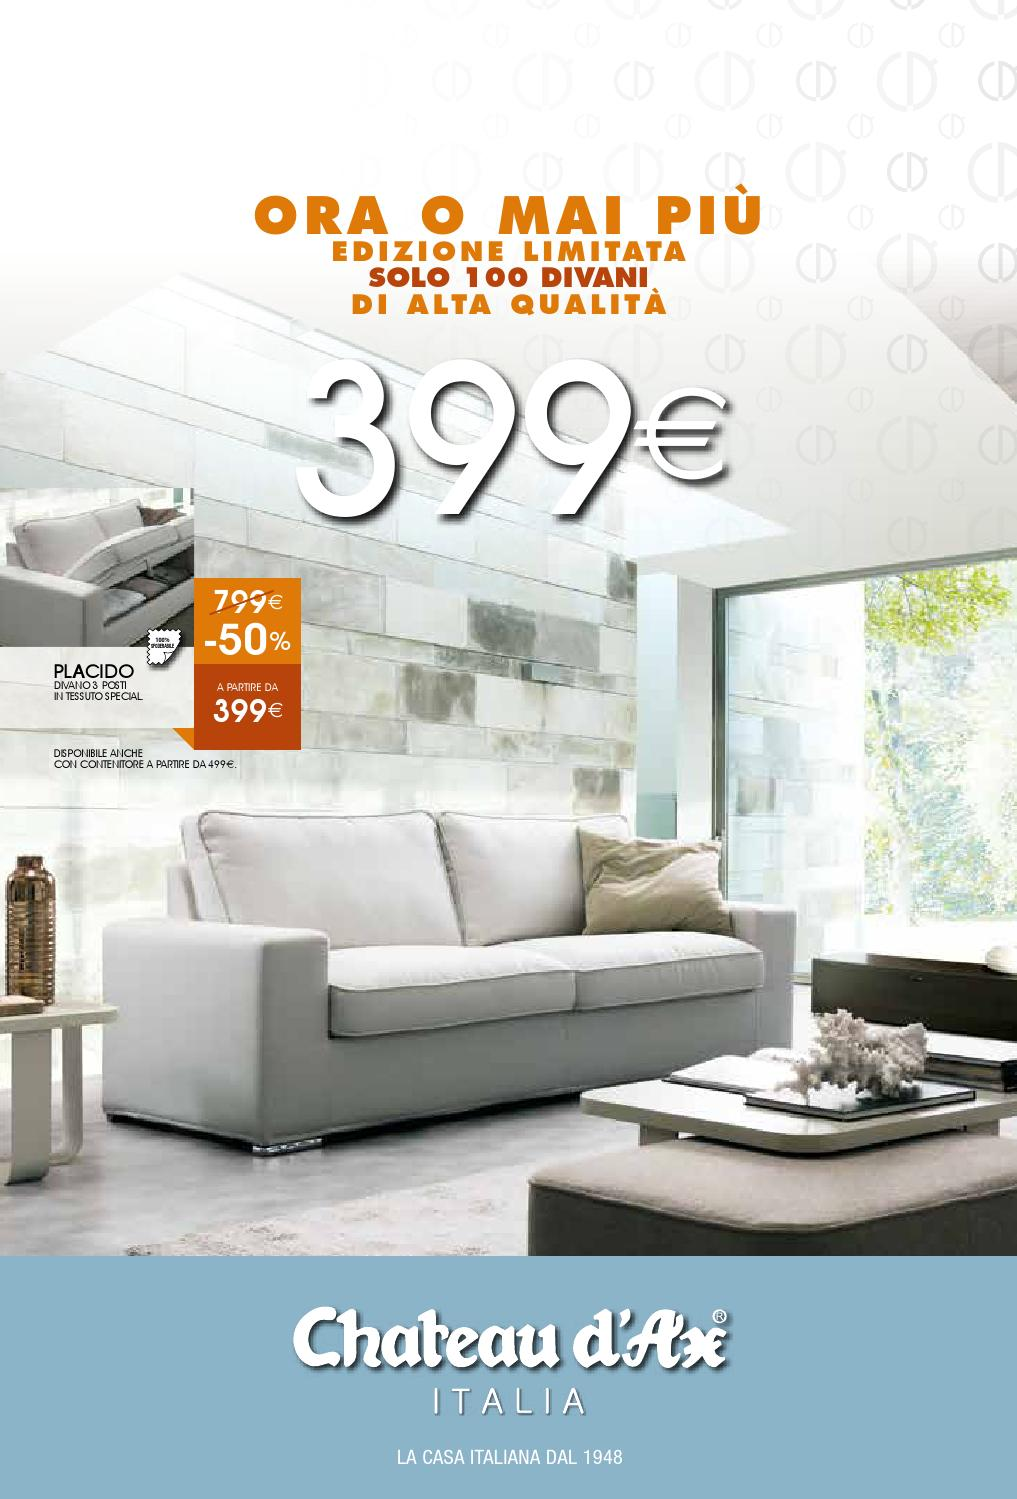 chateau d 39 ax catalogue malta september 2014 by steffy muscat issuu. Black Bedroom Furniture Sets. Home Design Ideas